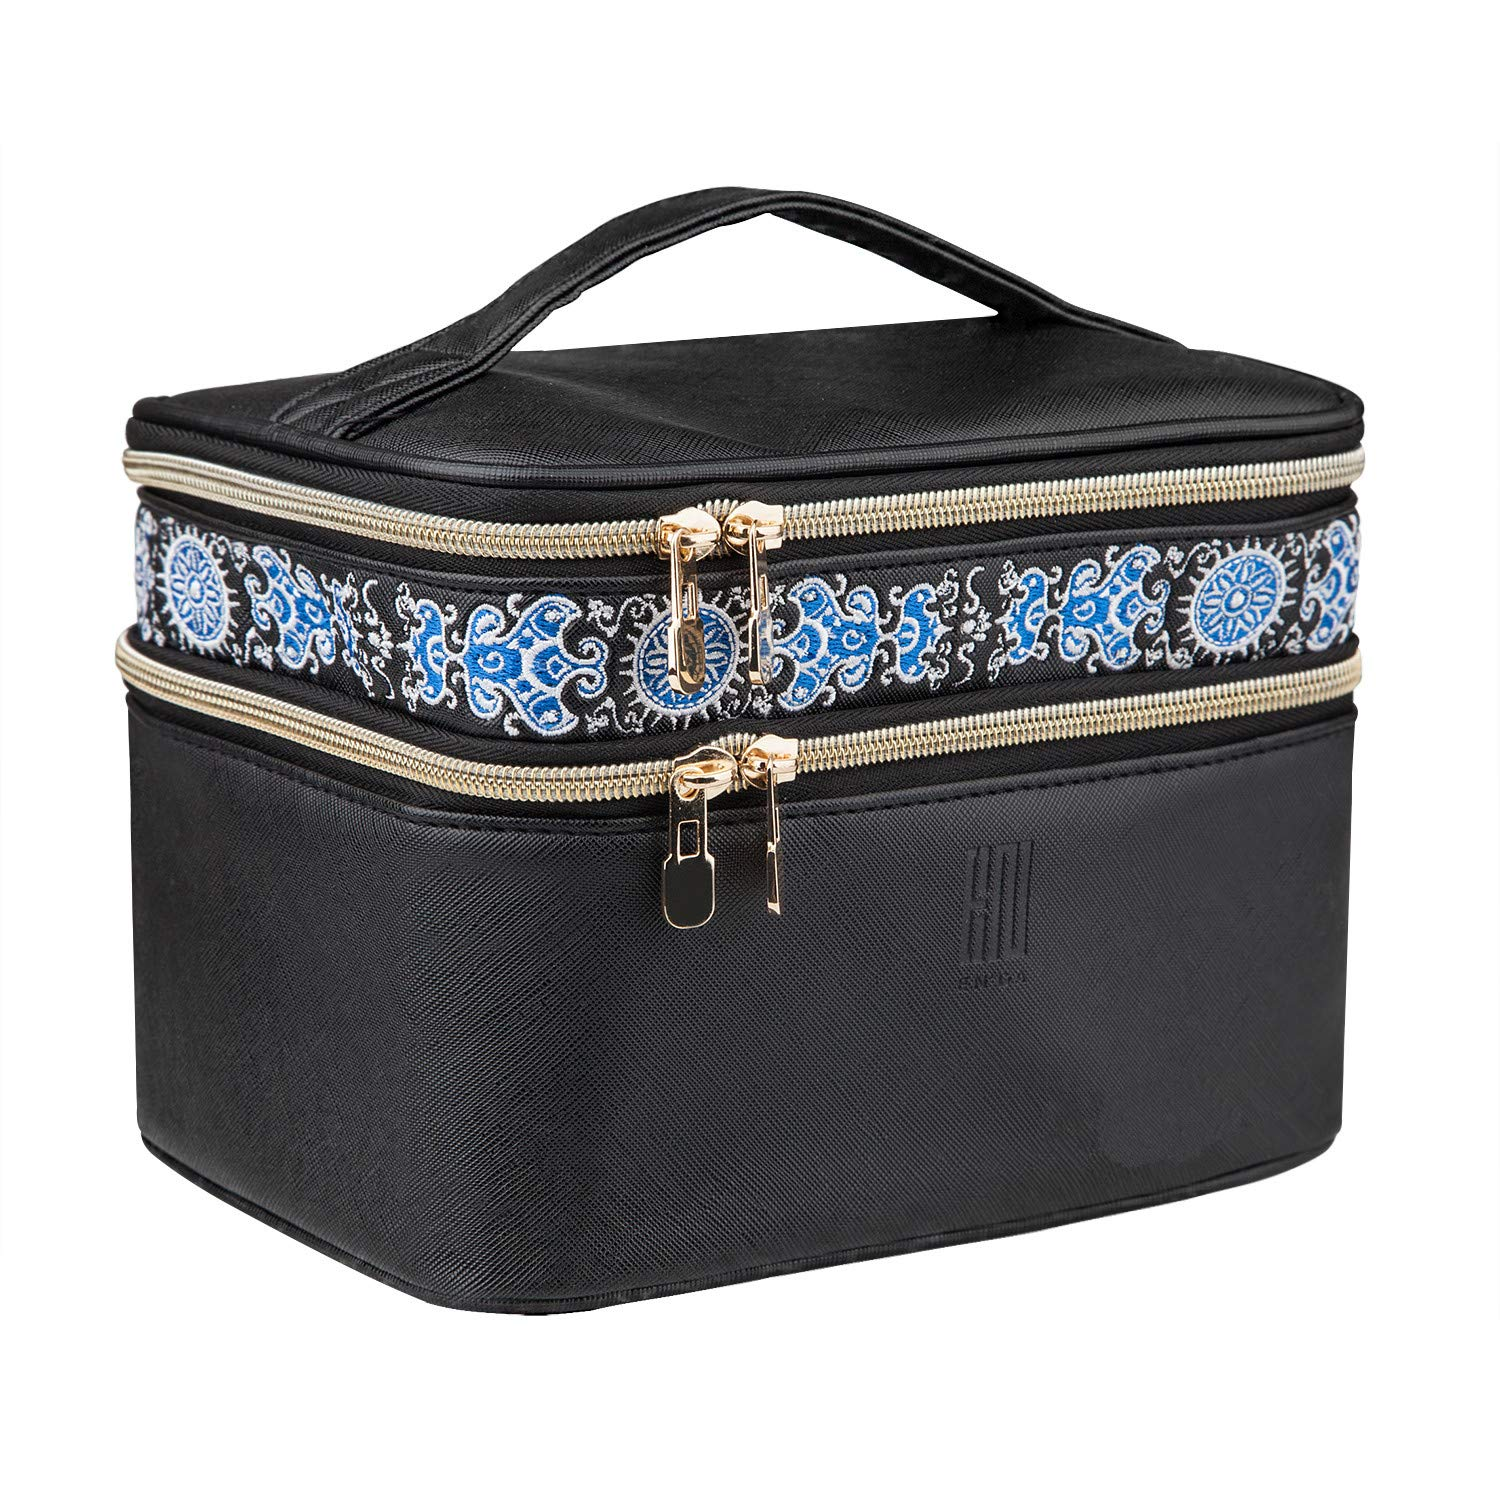 Makeup Case EN'DA Double Layer Make up Travel Cosmetic Bags with Elegant Embroidery-Black Medium size